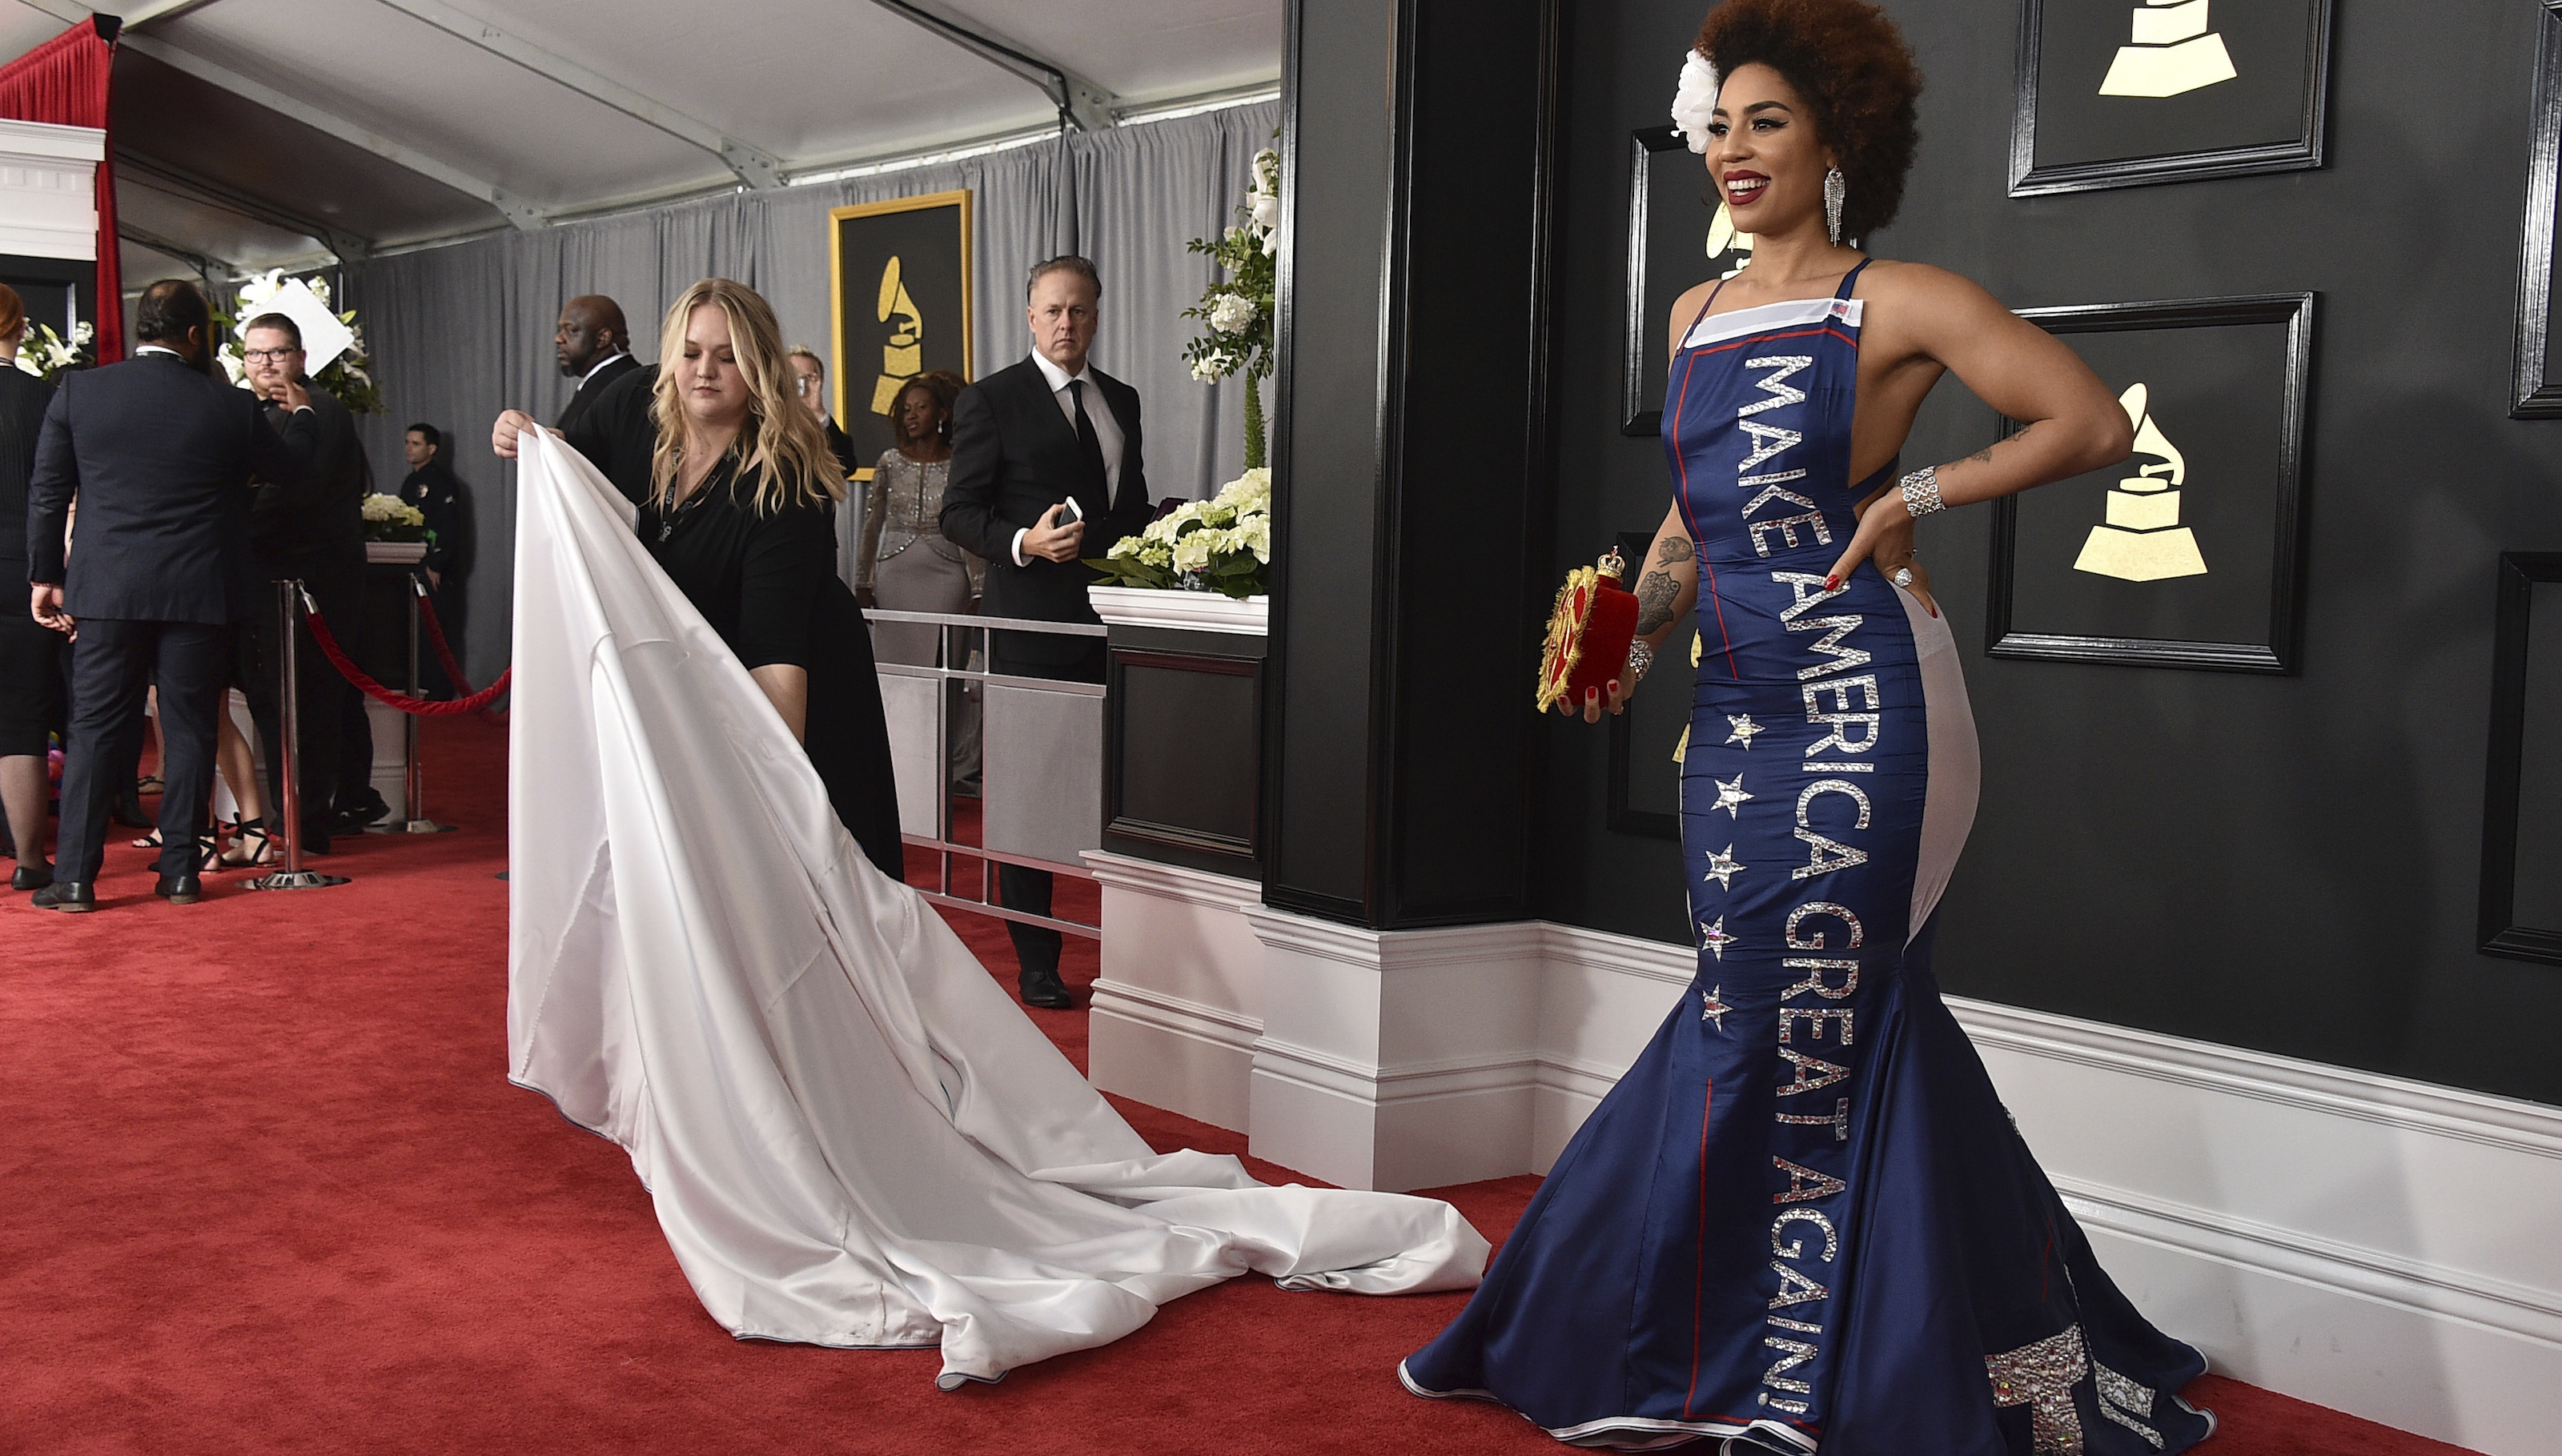 online store dcdef 9c4a0 Singer Joy Villa s sales rocket as Trump supporters get a new nobody to  fawn over